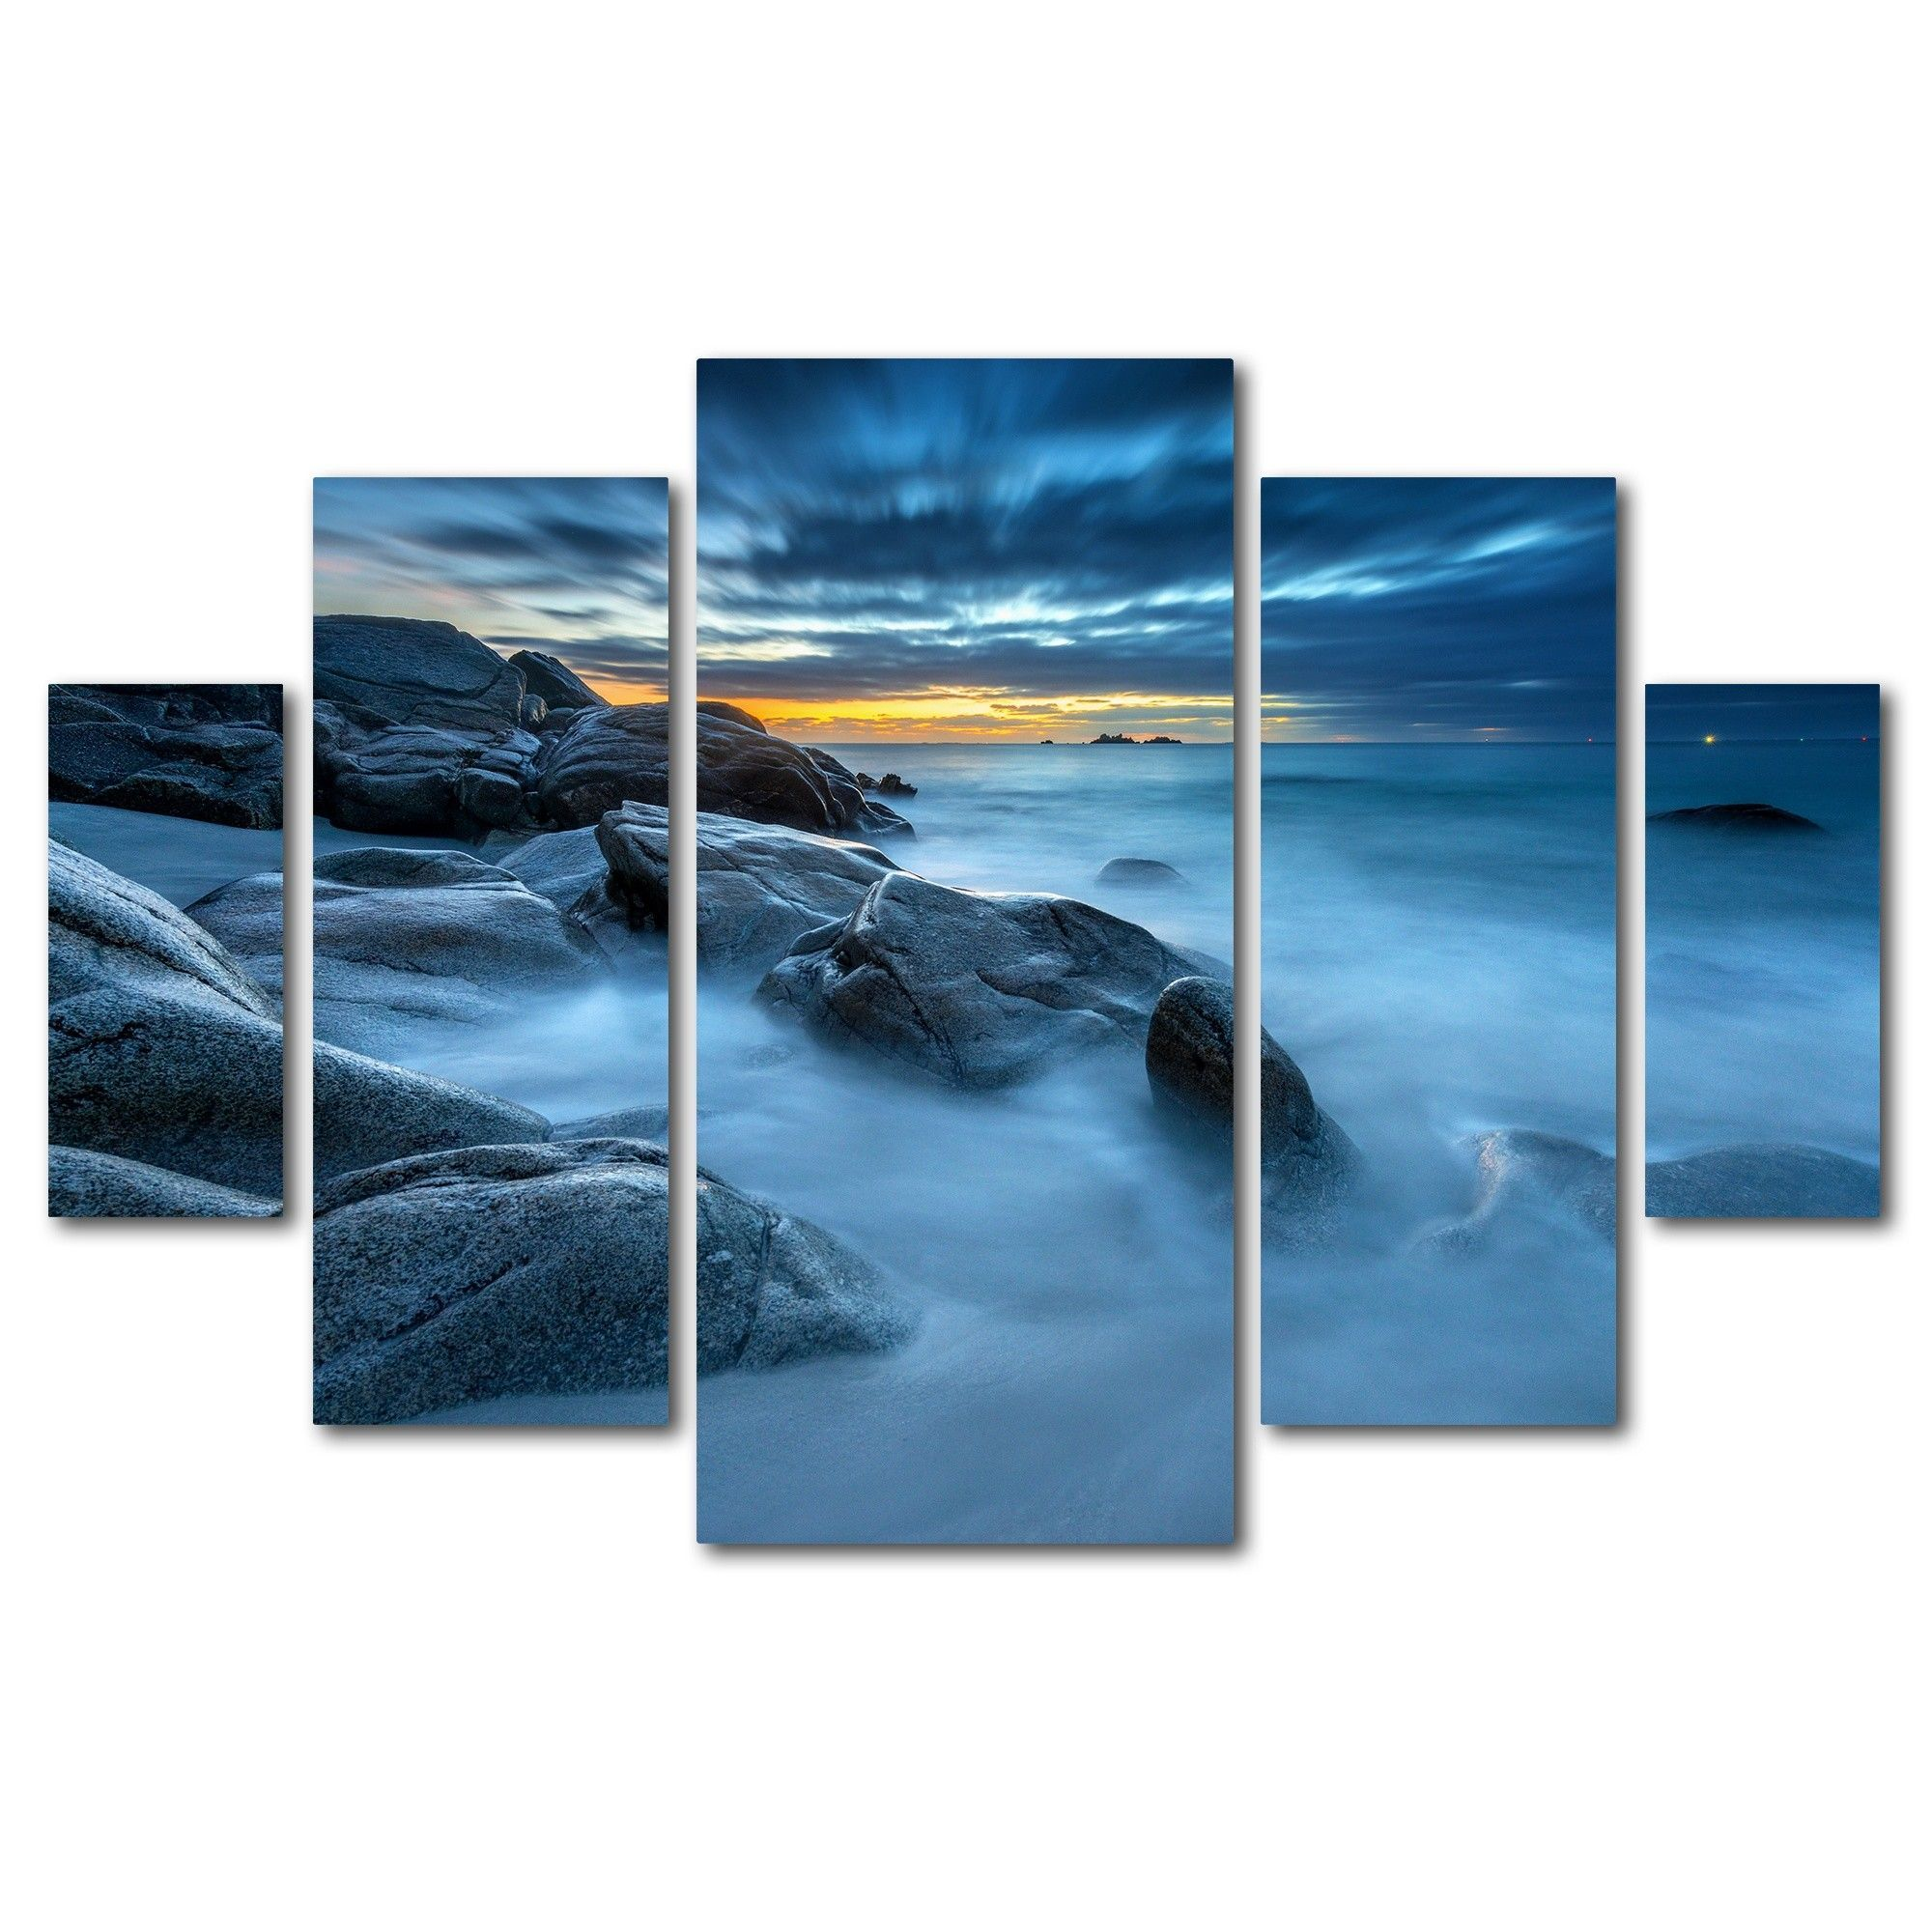 'Blue Hour for a Blue Ocean' by Mathieu Rivrin 5 Piece Photographic Print on Wrapped Canvas Set